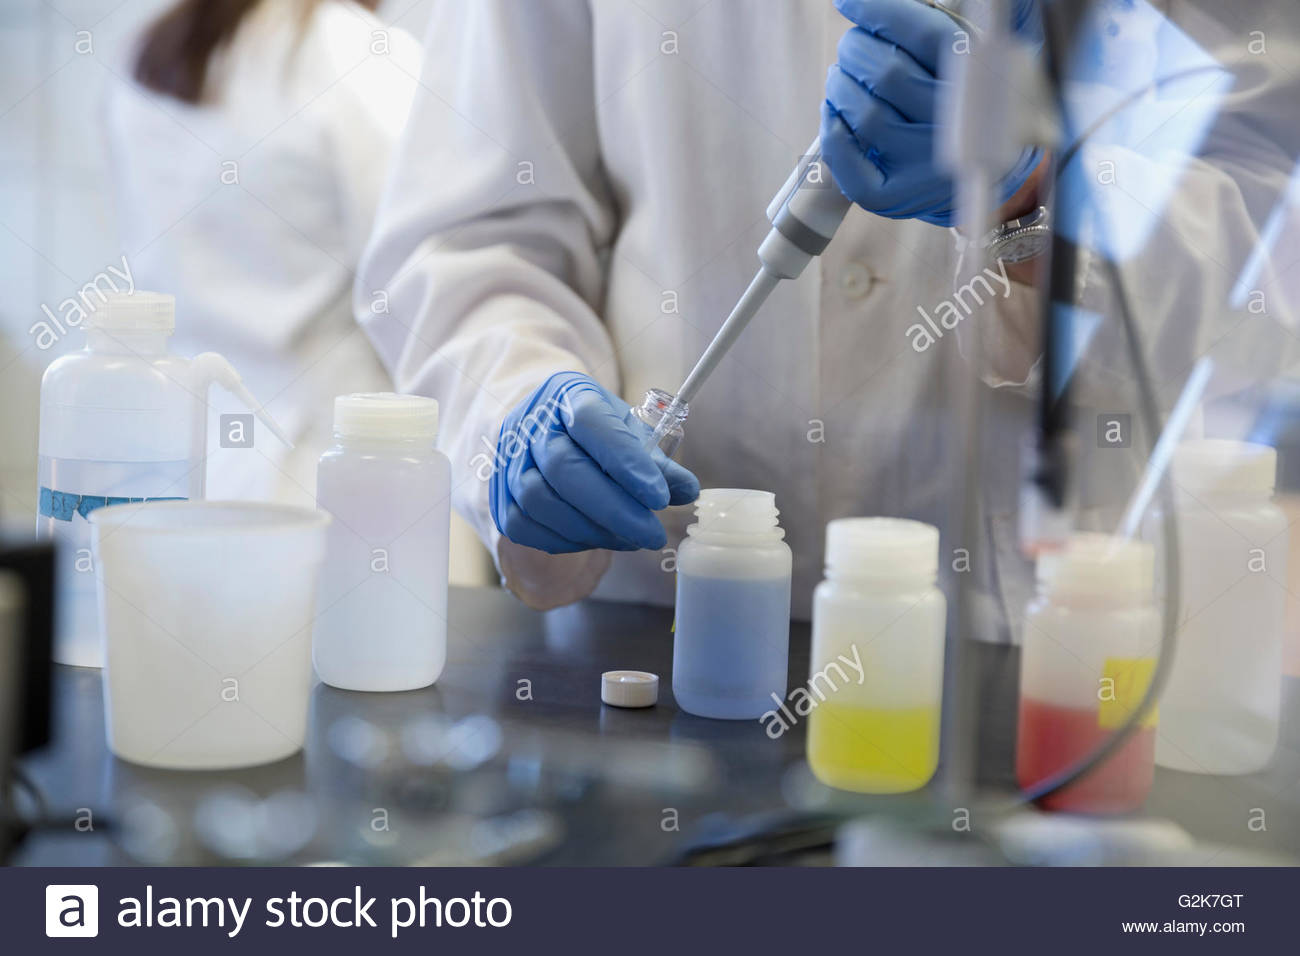 Scientist using pipette to extract liquid in laboratory - Stock Image